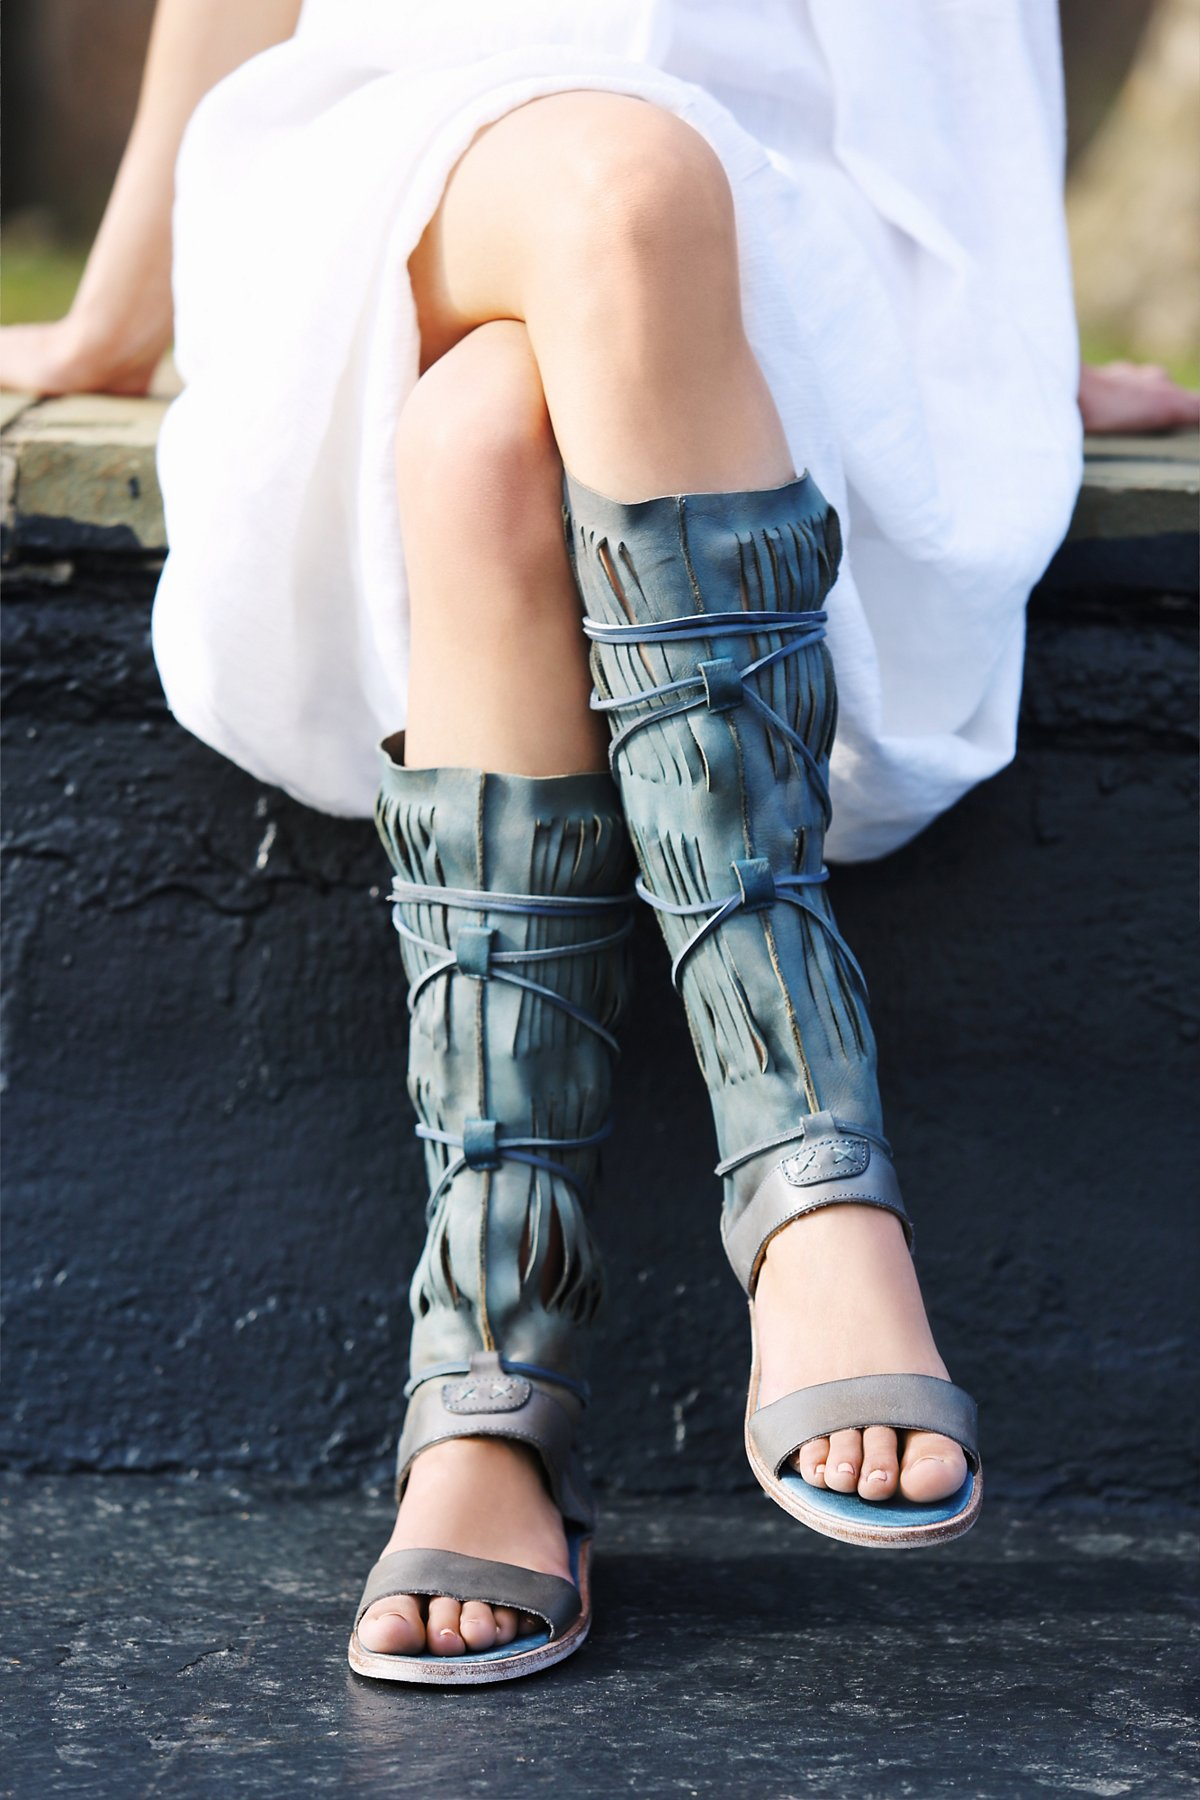 Days On The Road Sandal